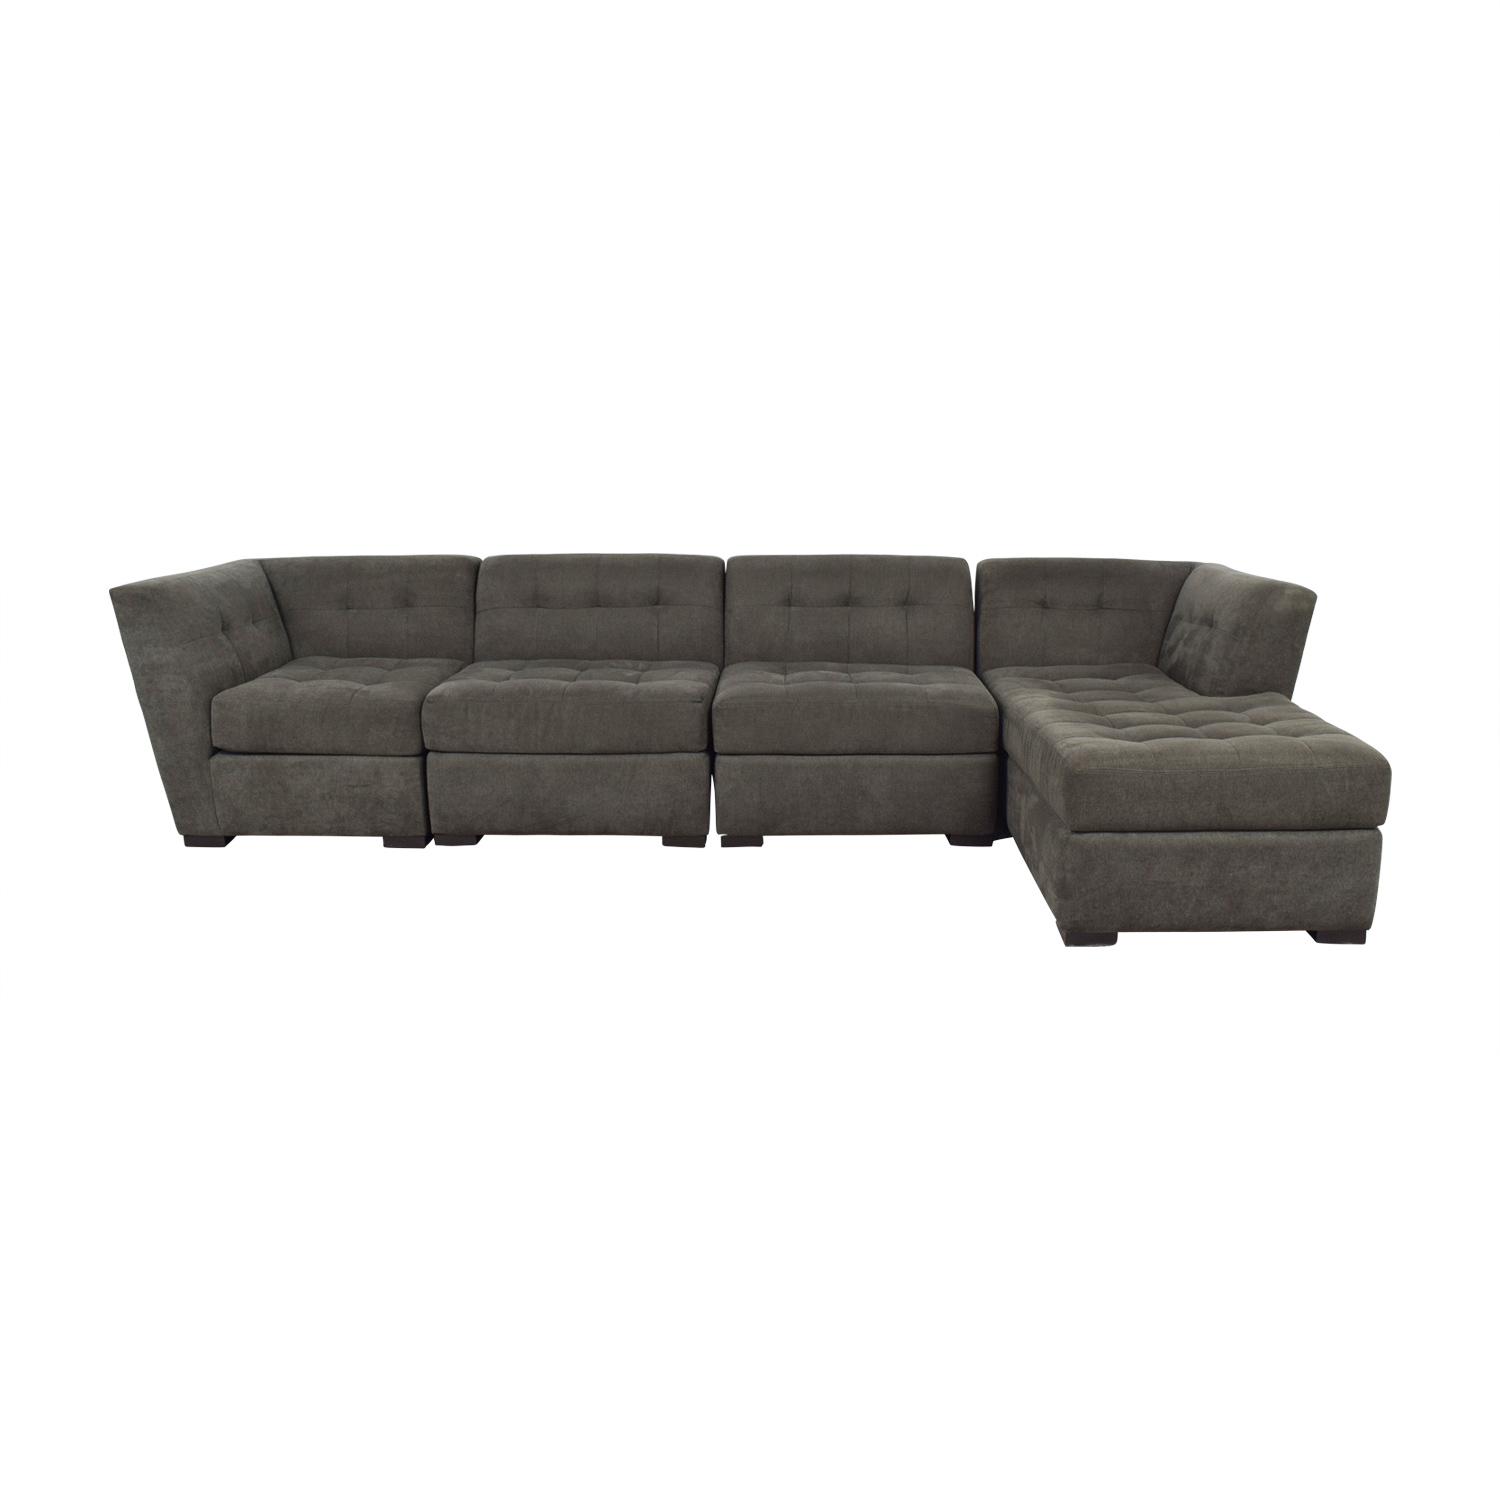 Macy's Macy's Grey Tufted Four Piece Chaise Sectional nyc